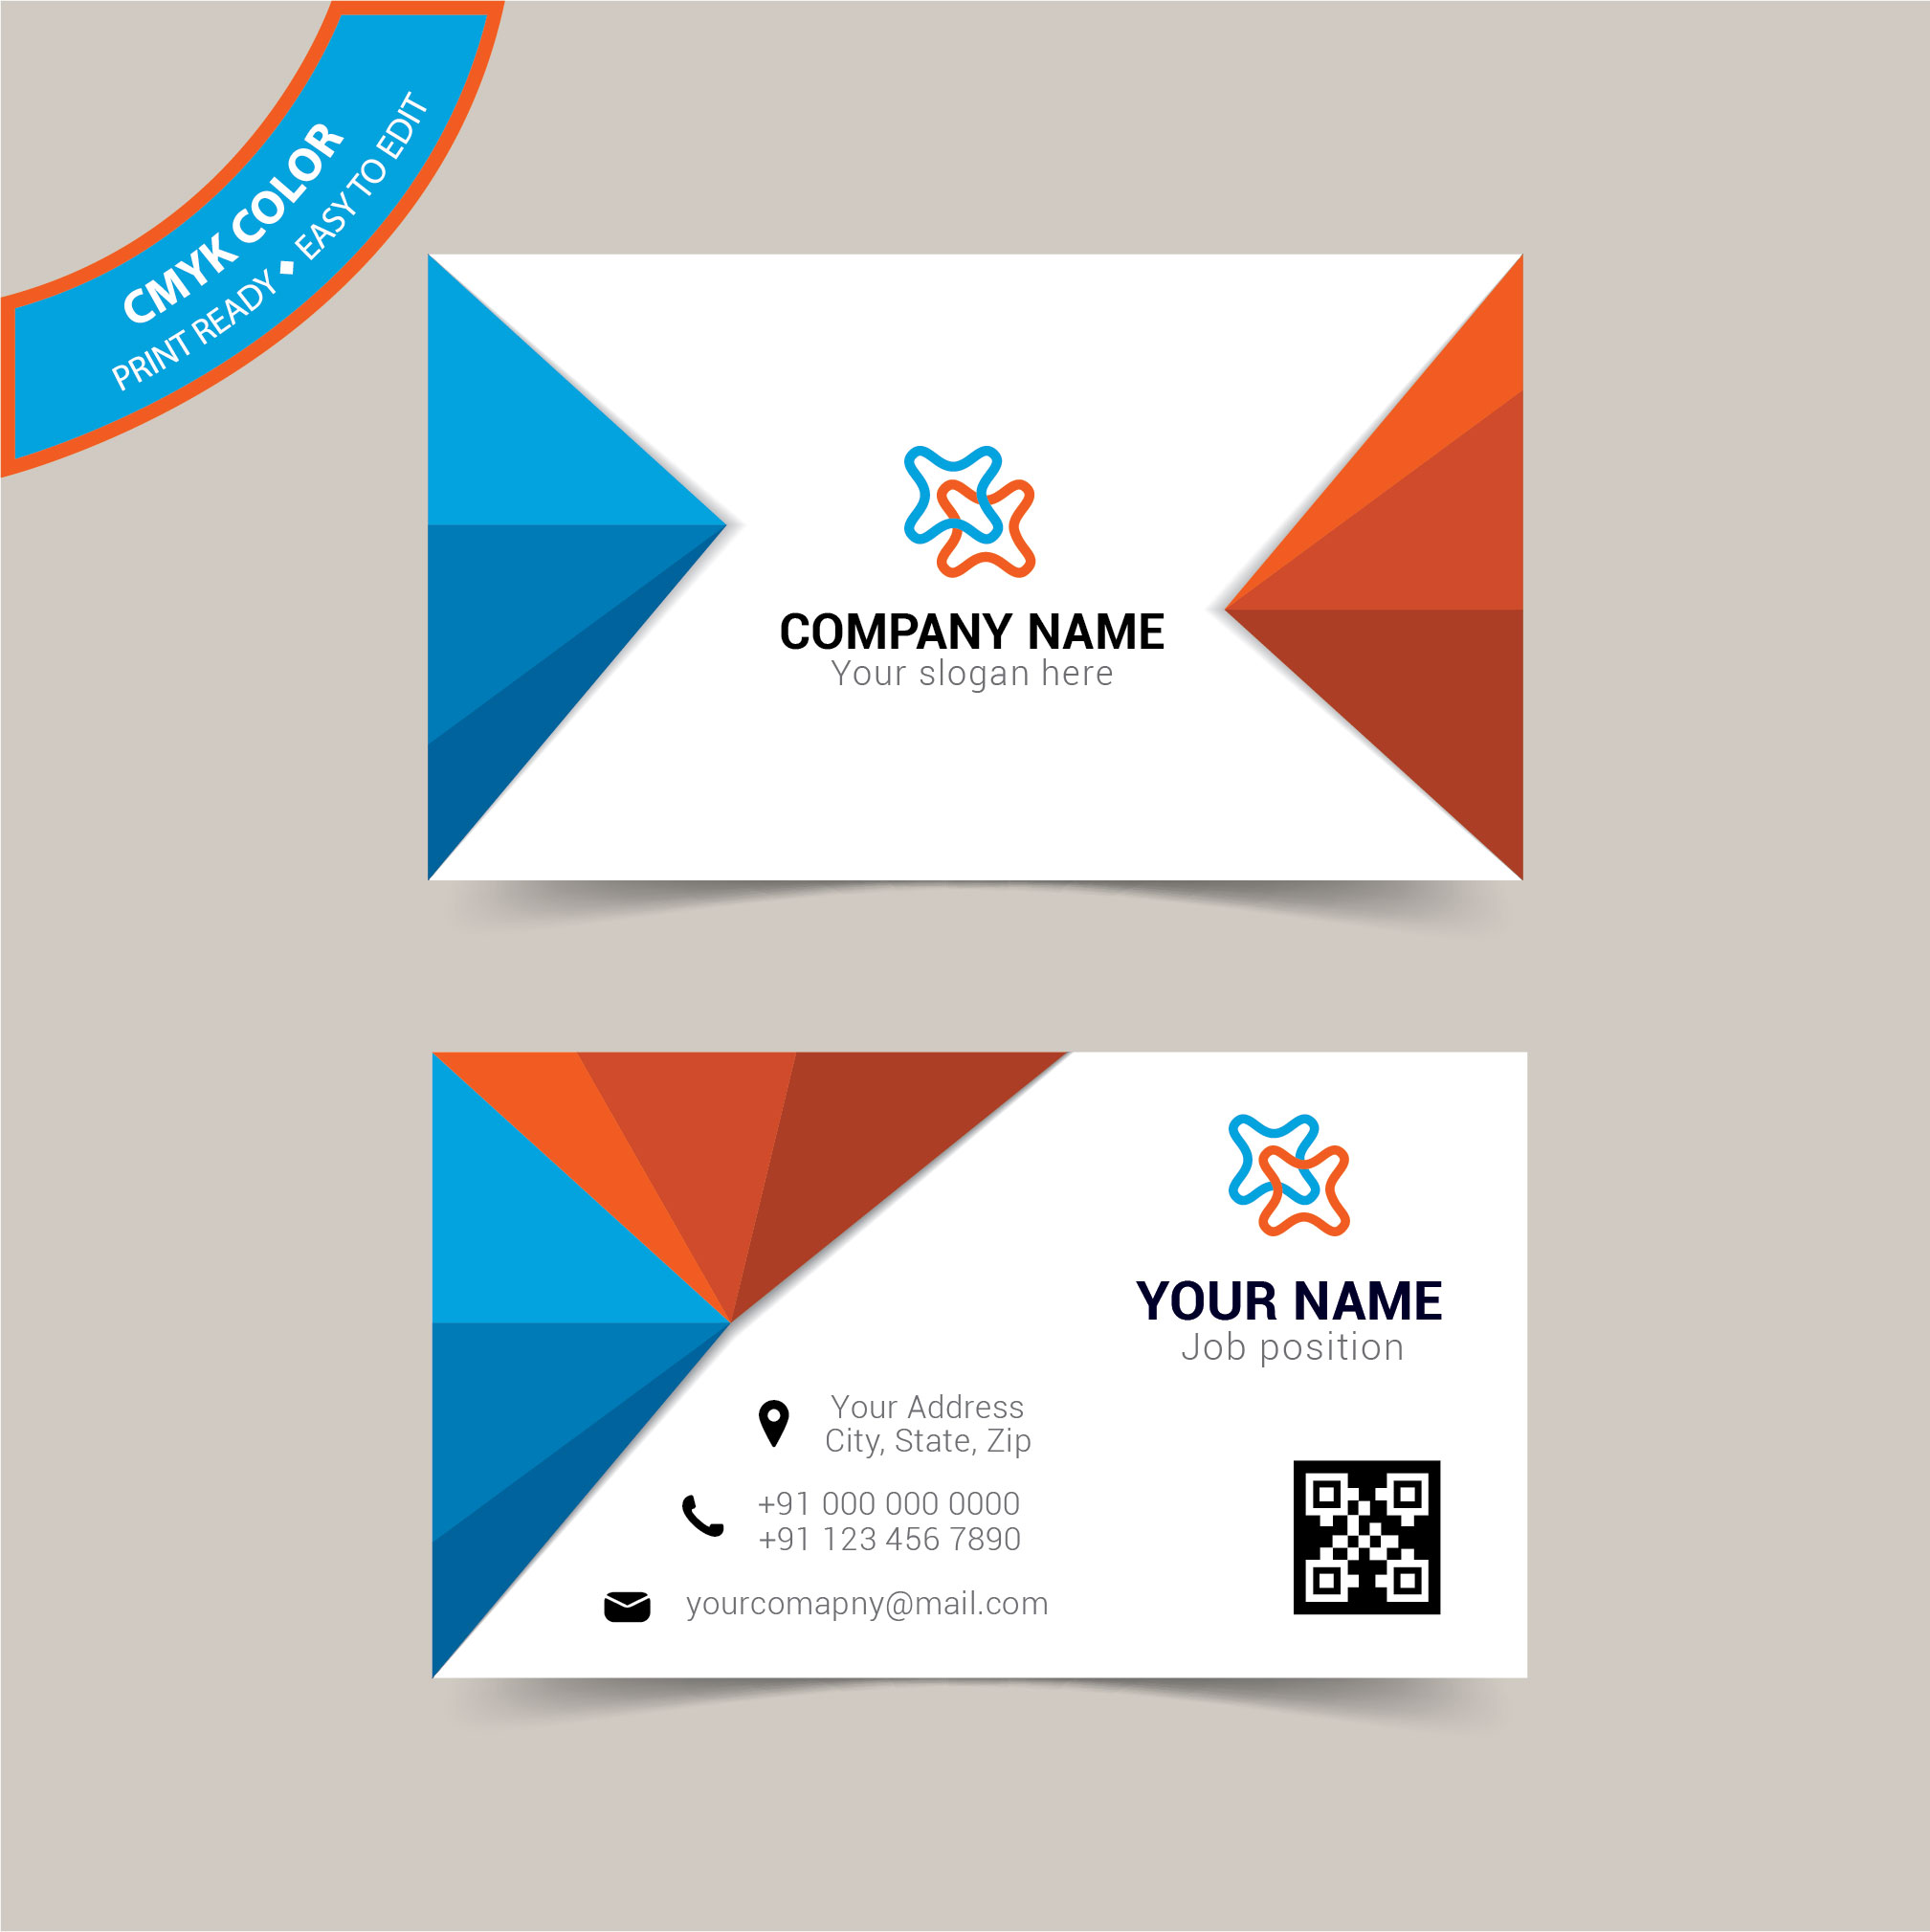 Double sided creative business card template free download wisxi business card business cards business card design business card template design templates fbccfo Choice Image